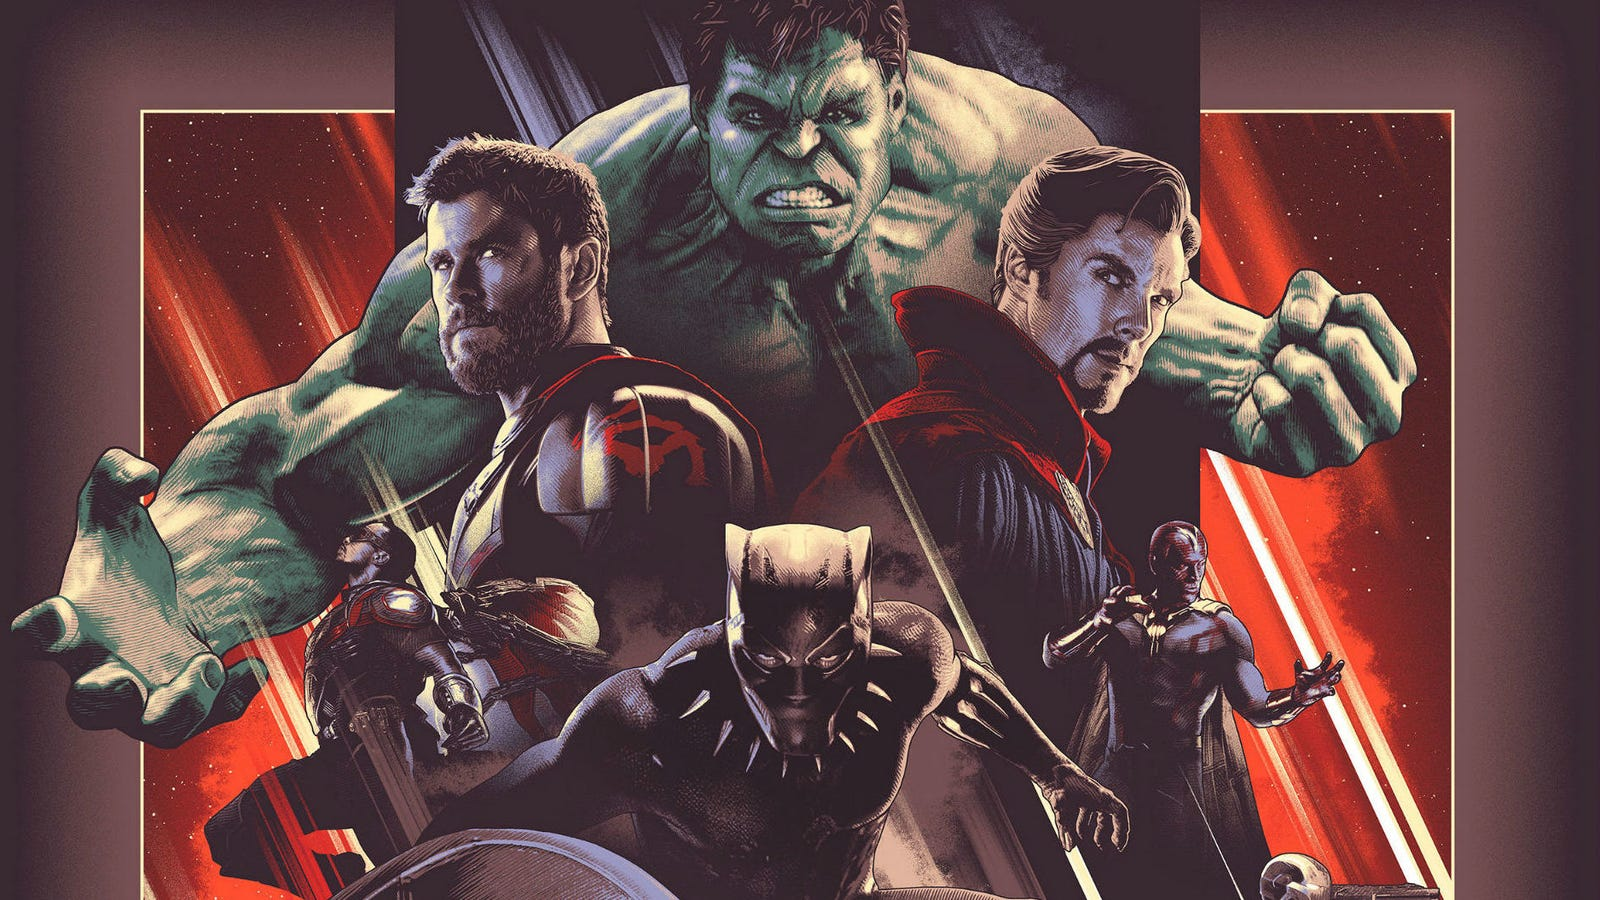 Celebrate 10 Years of Marvel Studios With This Serious Set of Posters